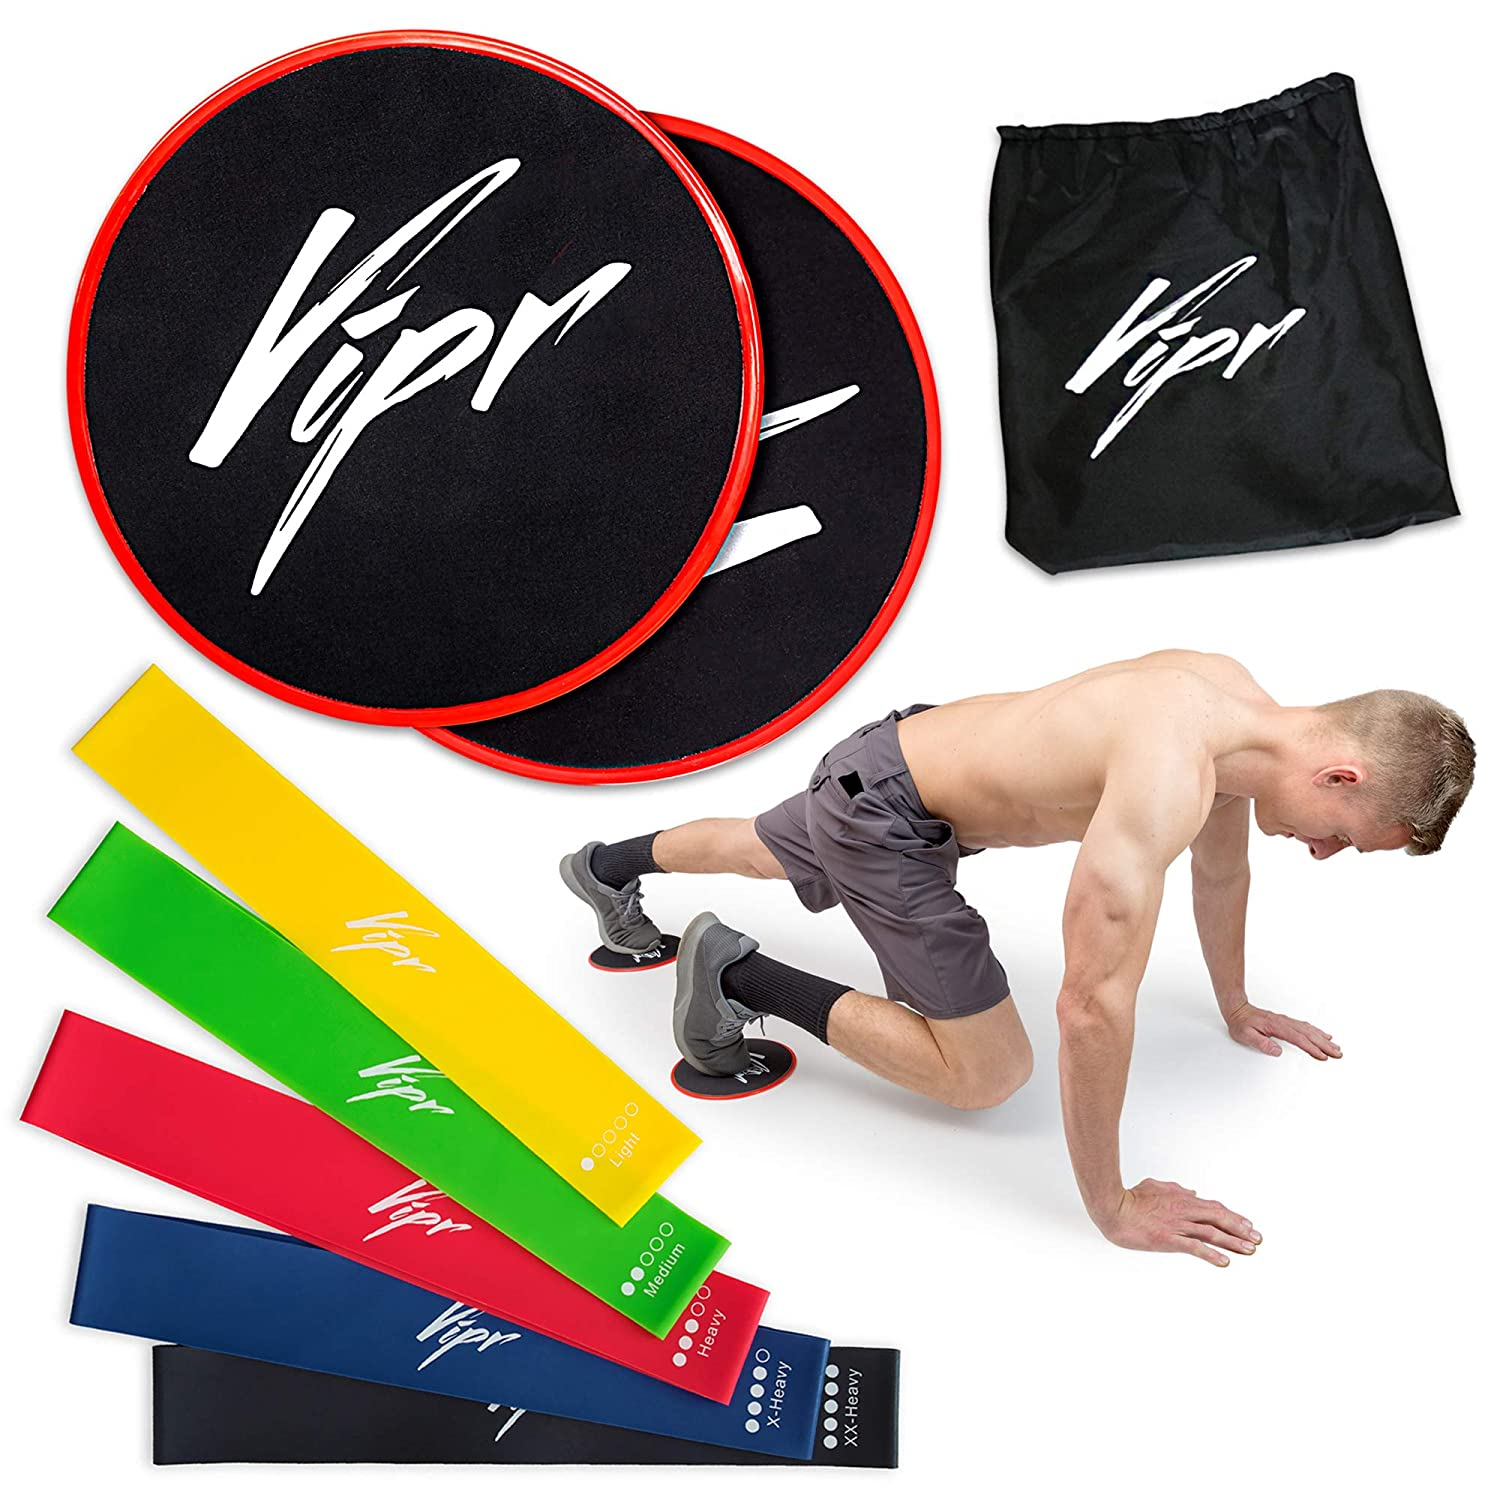 Core Sliders 5 Resistance Loops Bands Gliding Discs Exercise Band Set for Intense Exercises Professional Beachbody 80 Day Obsession Equipment for Home Gym Build Strength Flexibility